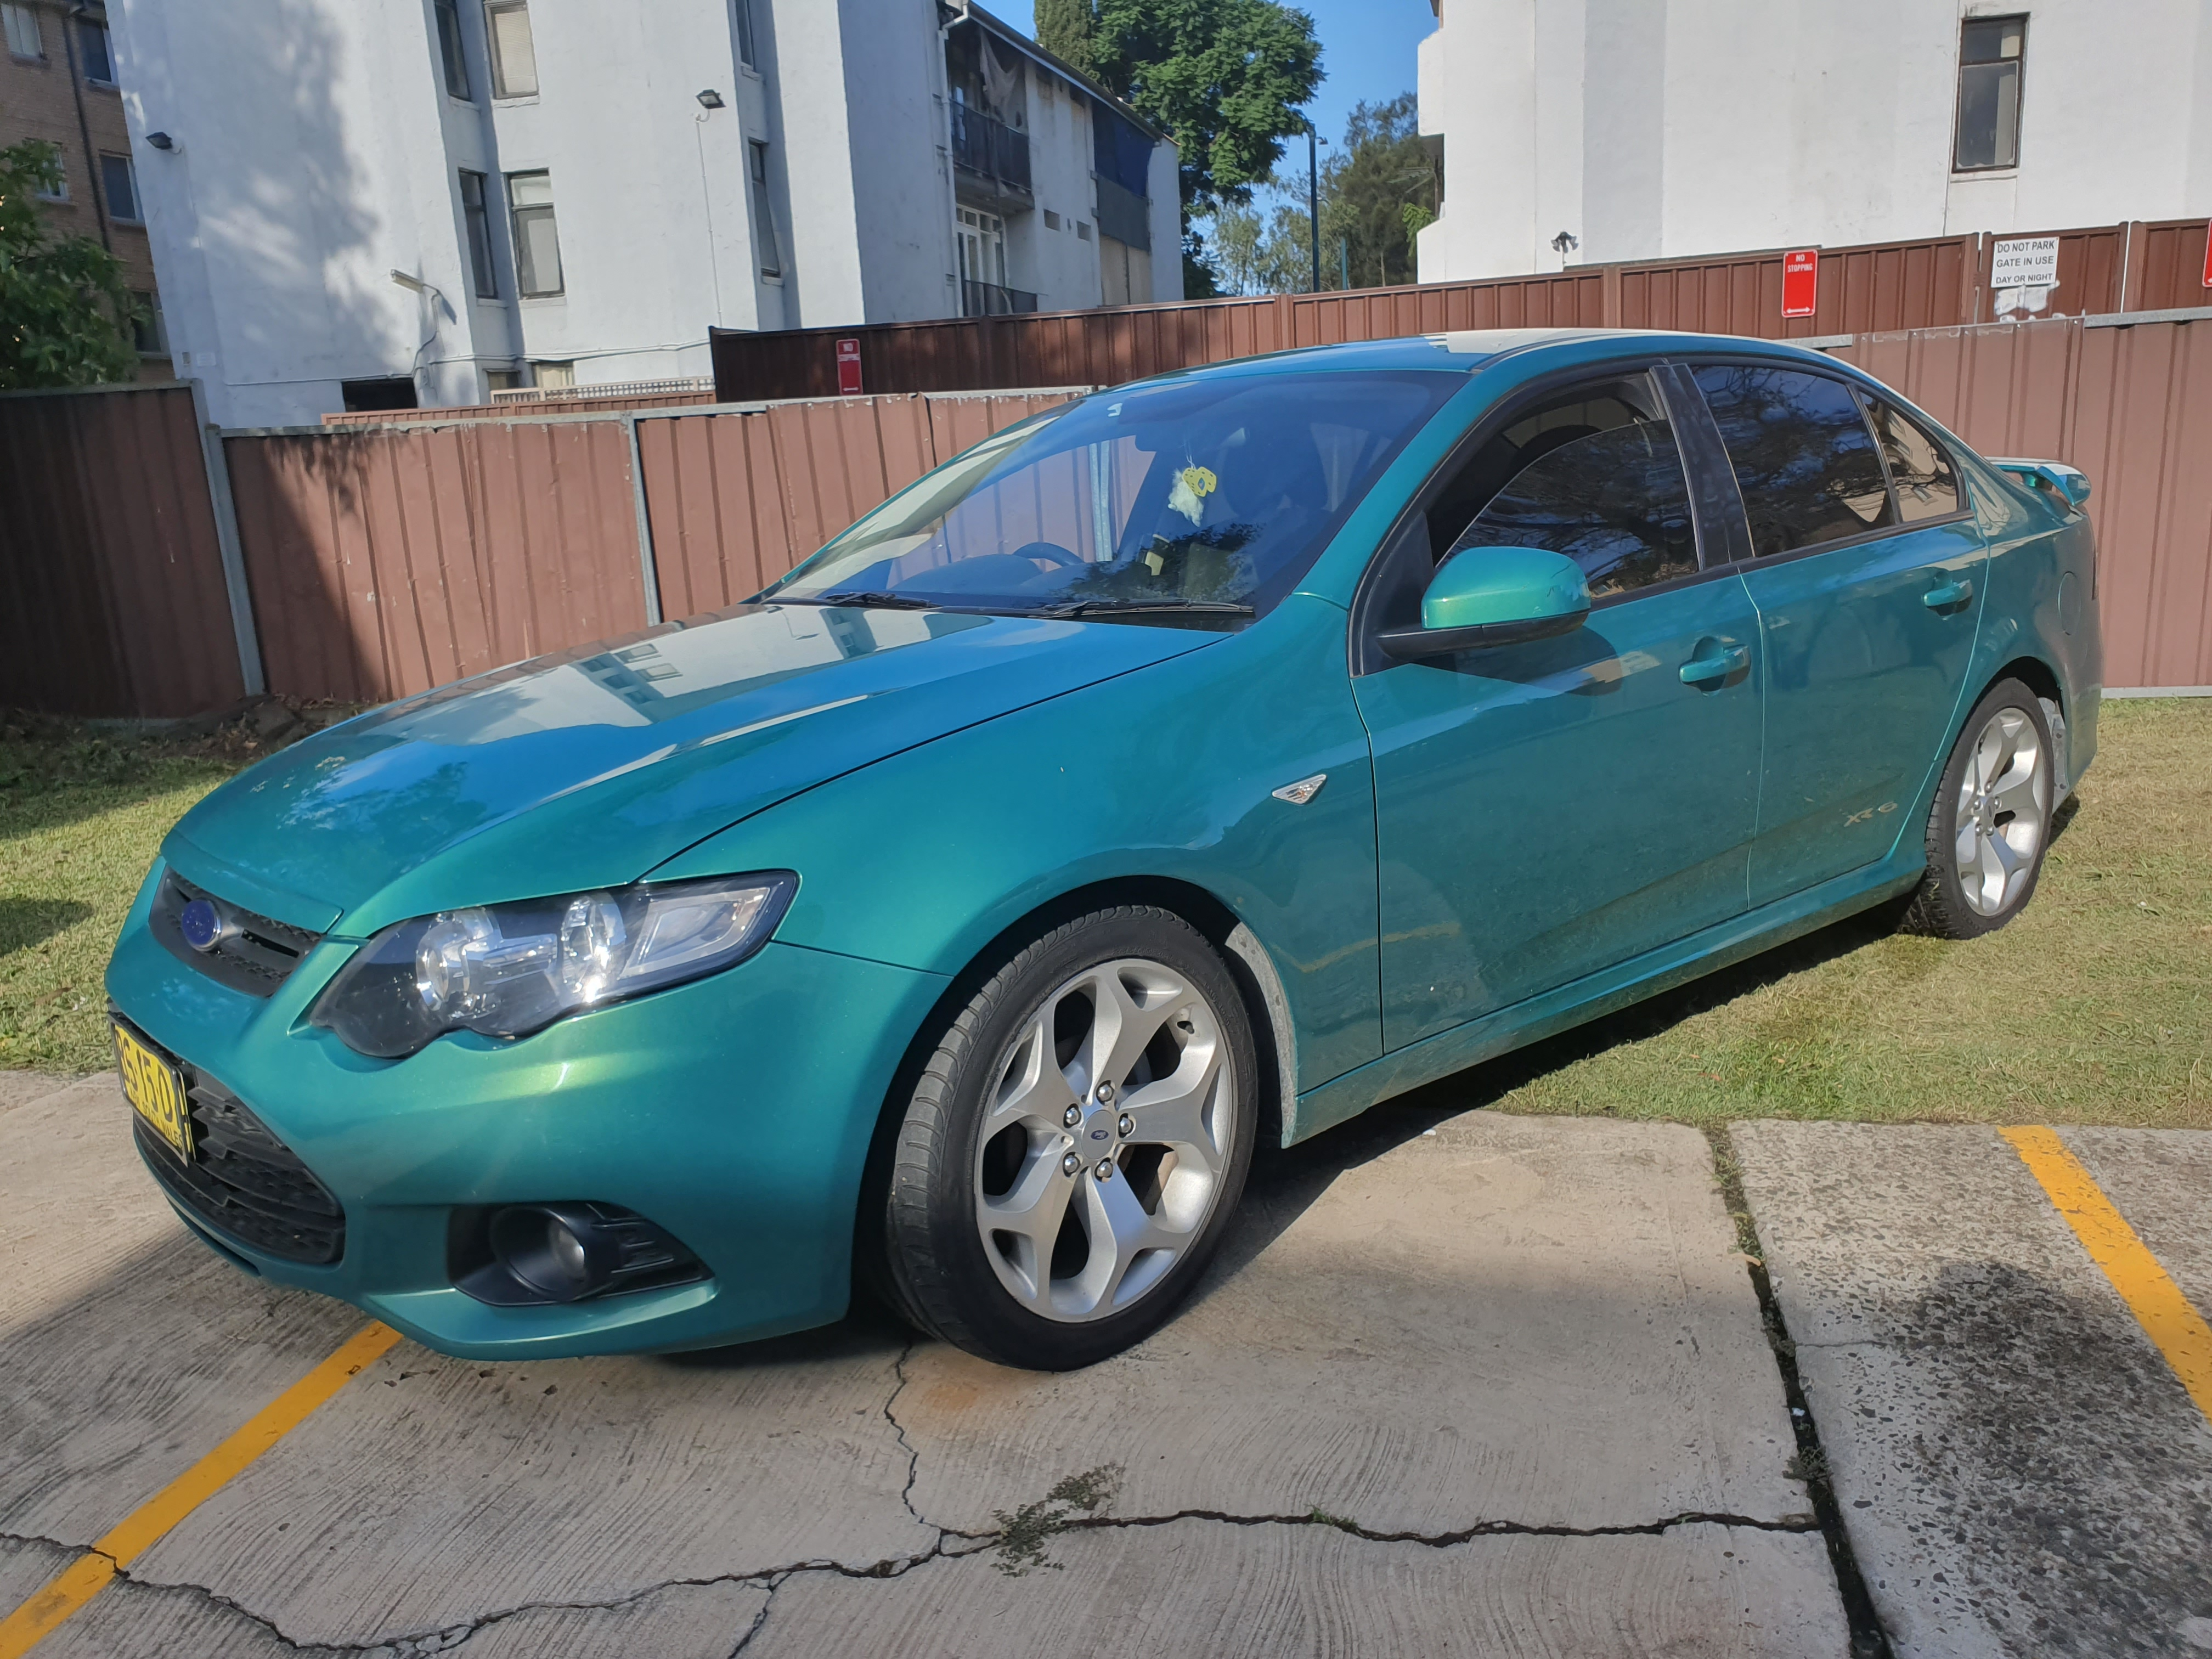 Picture of Paramdeep's 2012 Ford Xr6